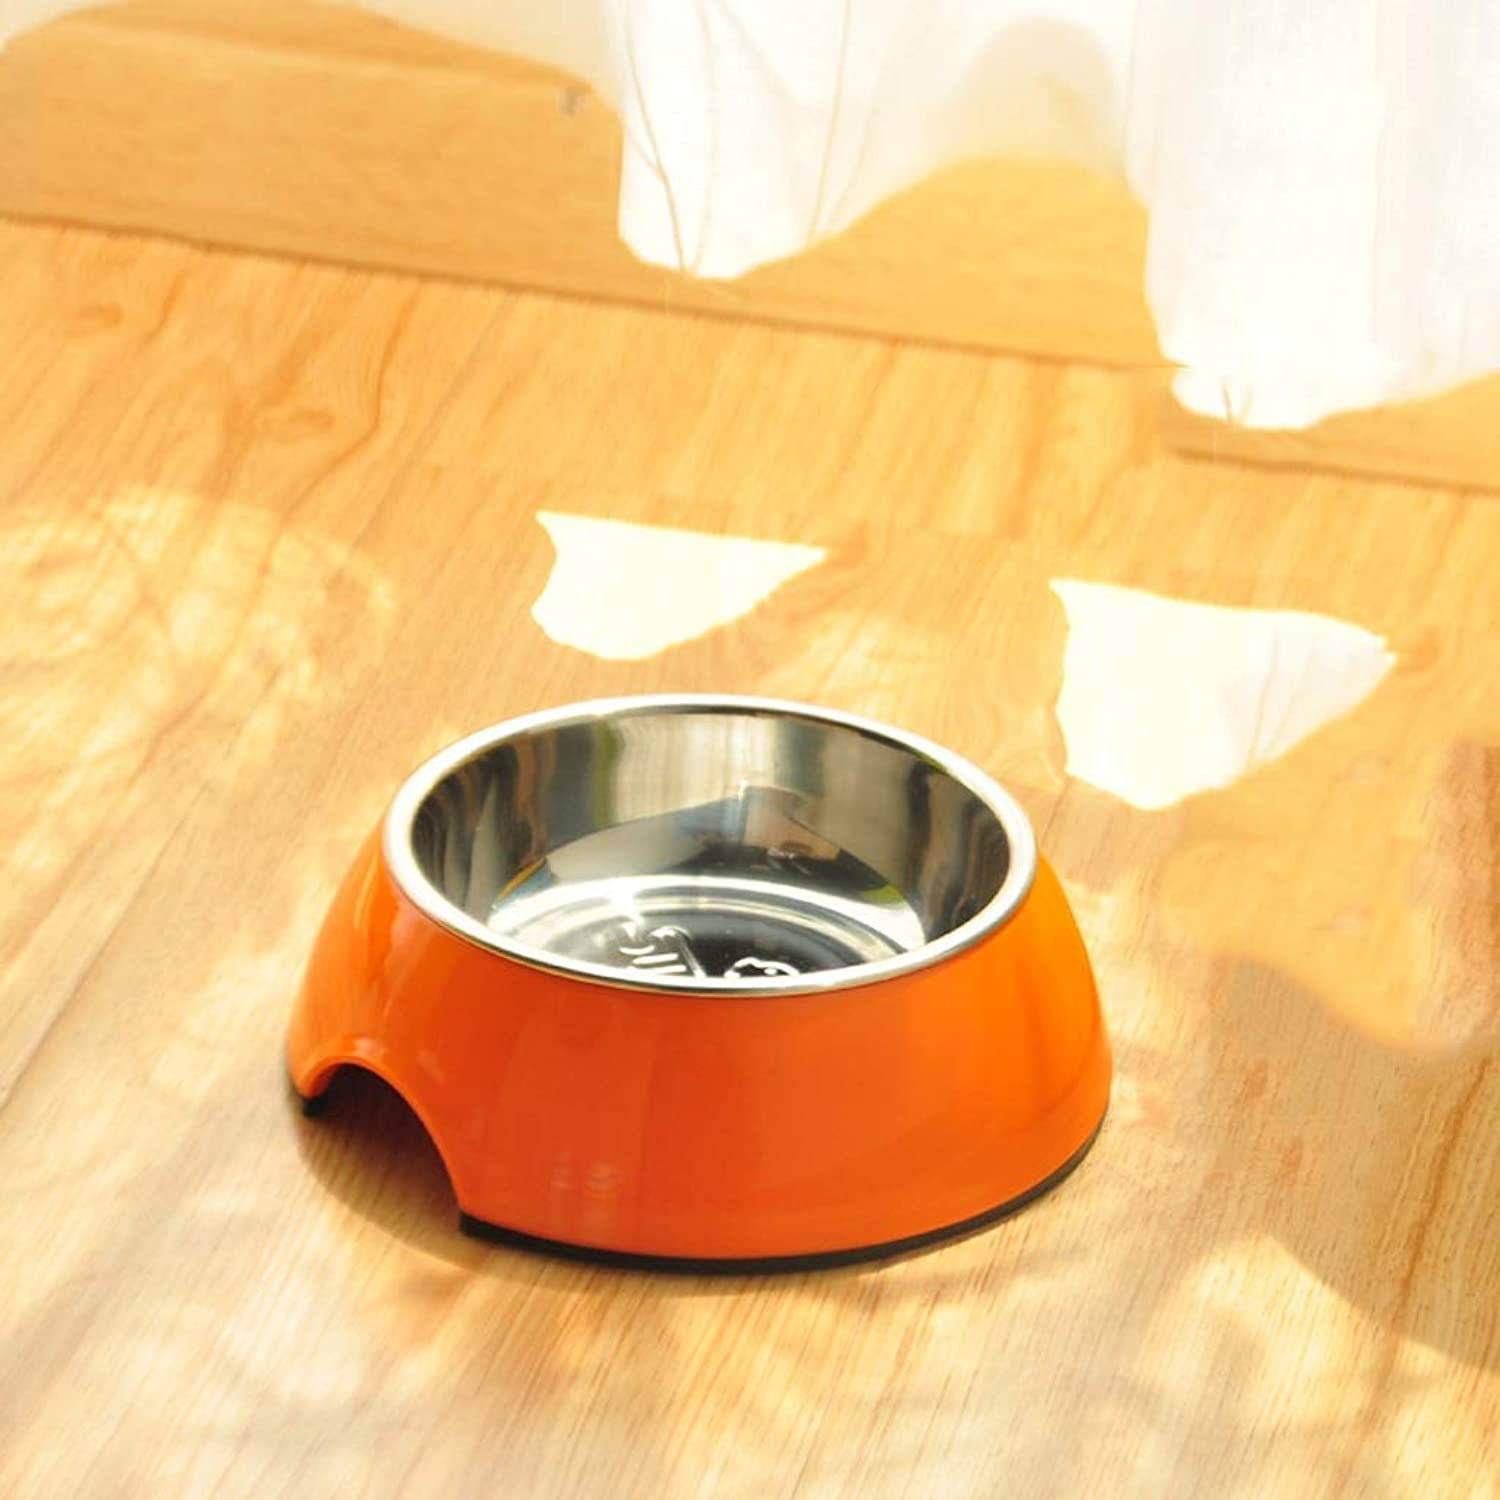 CXQ Dog Bowl Pet Bowl Dog Food Bowl Small Medium and Large Dog Stainless Steel AntiSkid Cat Bowl orange Pet Supplies (Size   S)